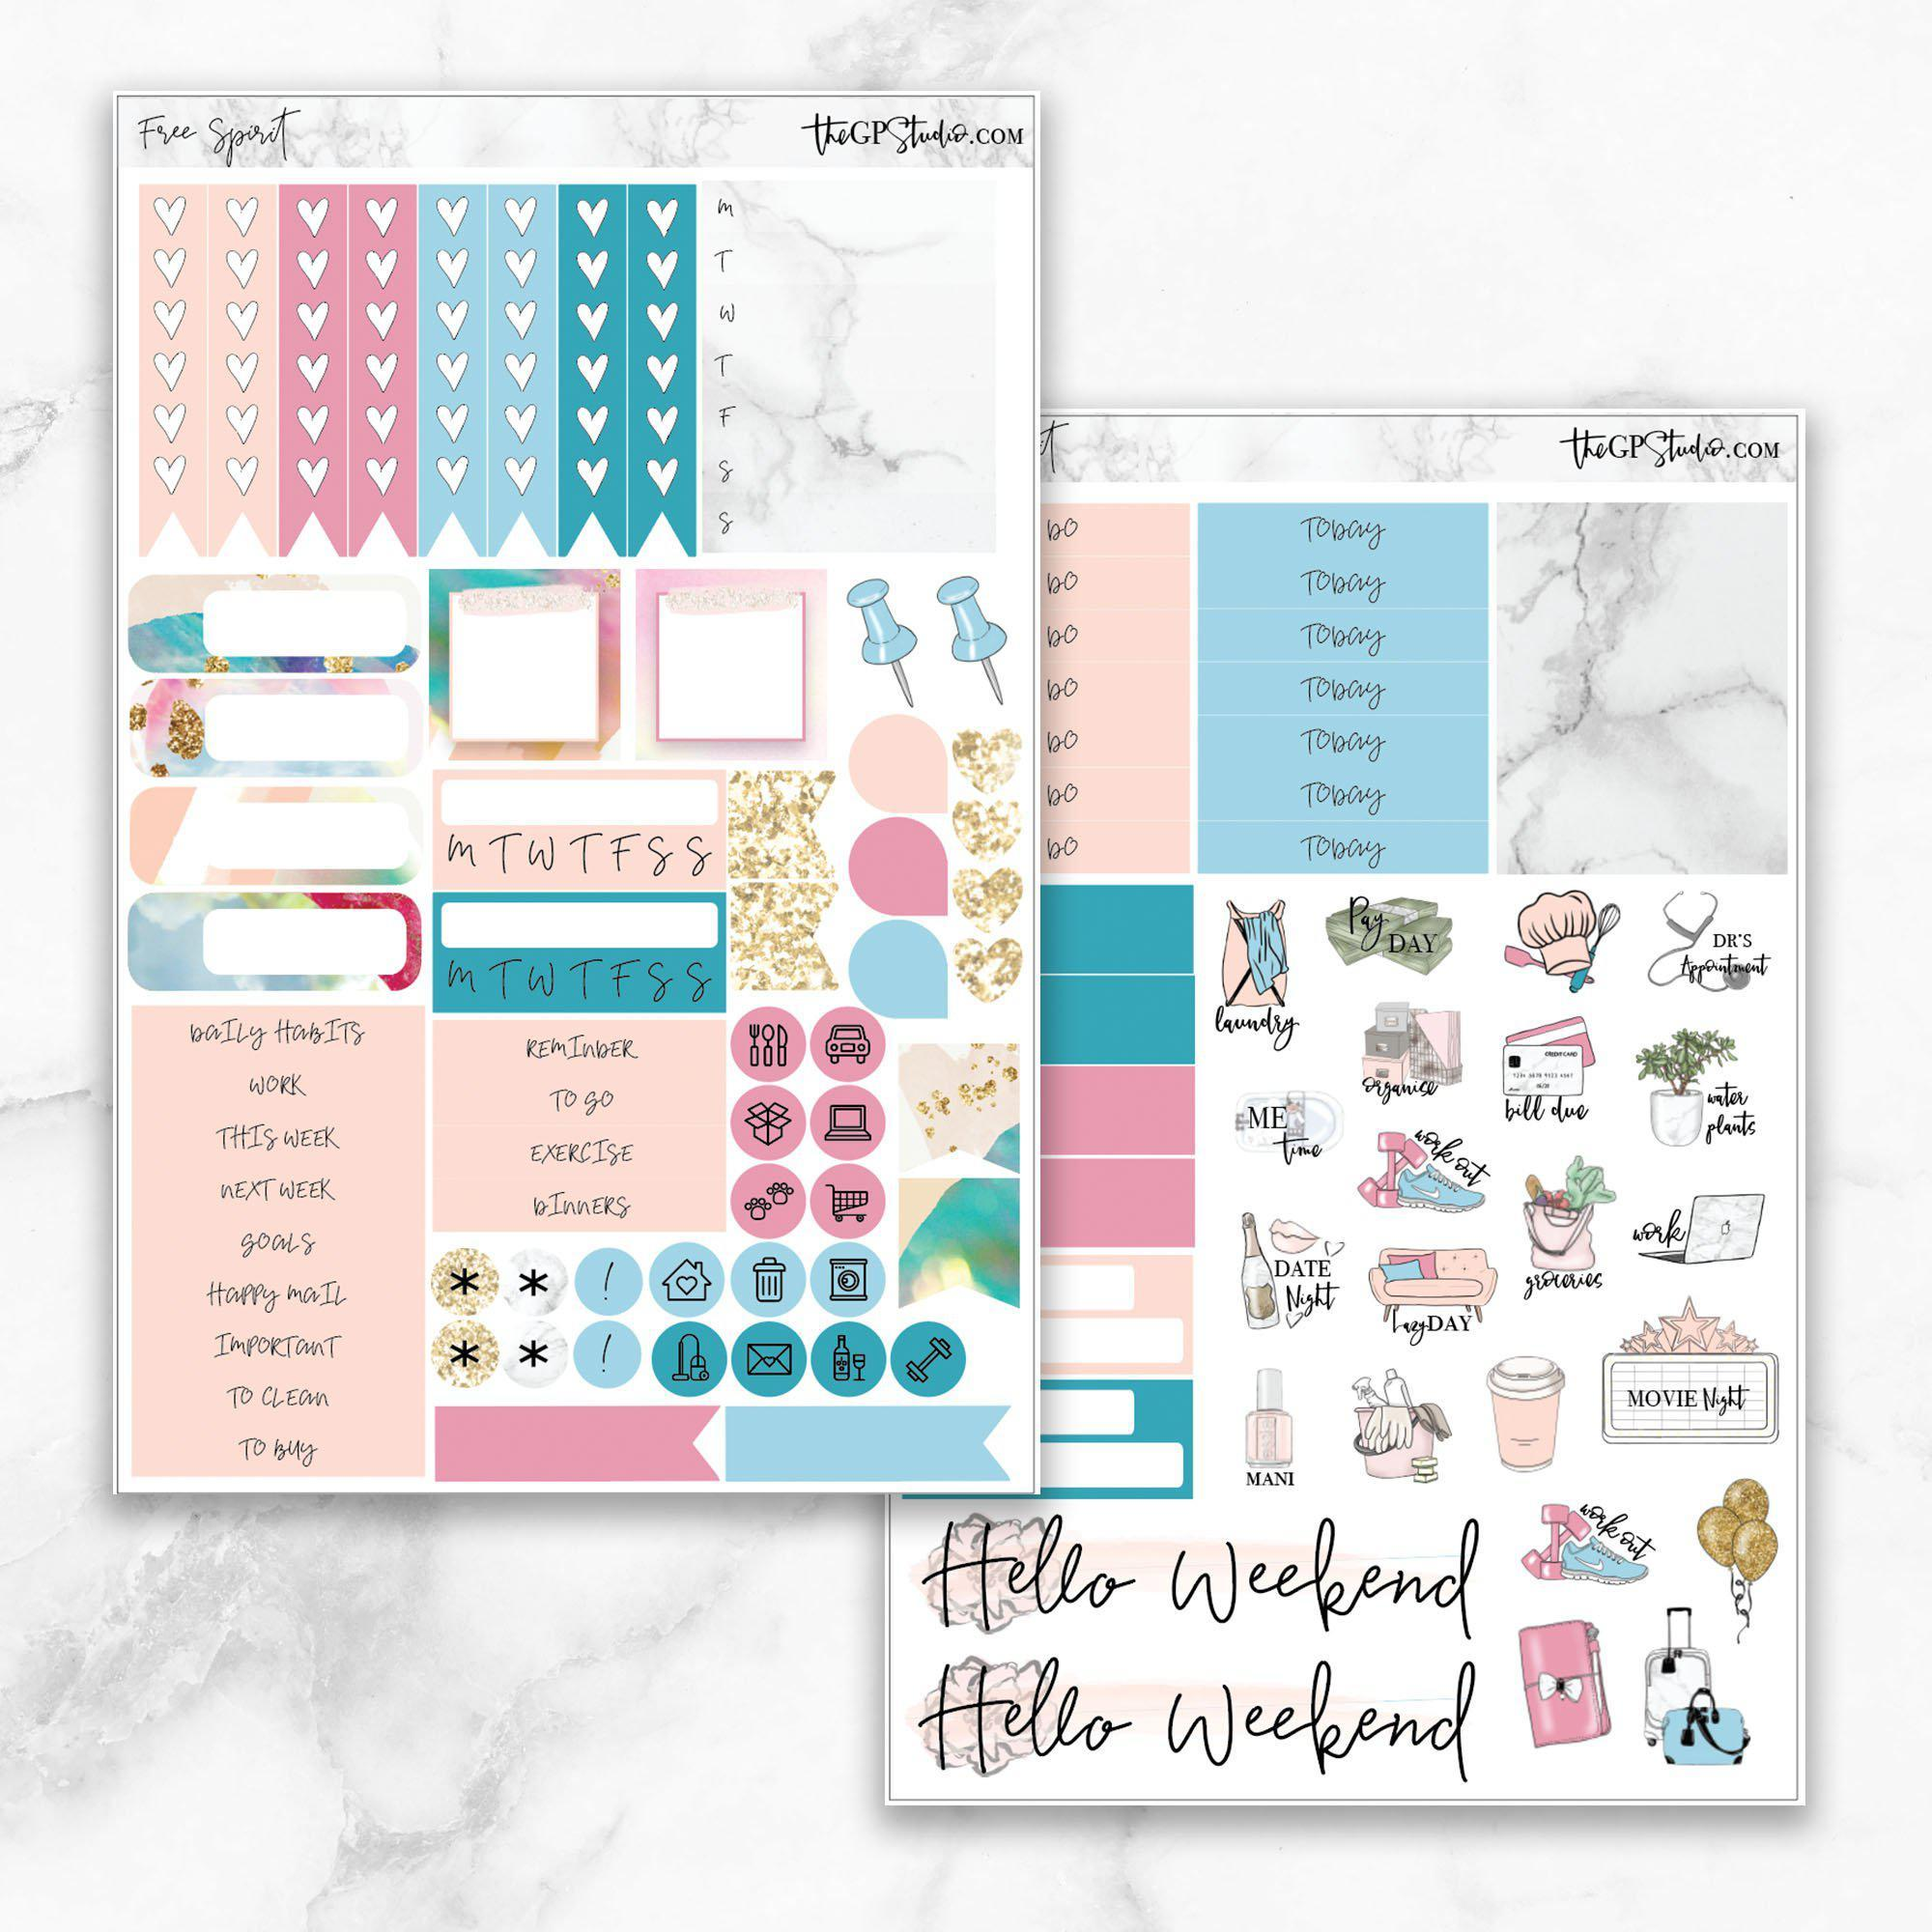 FREE SPIRIT Functional Planner Sticker Kit-The GP Studio